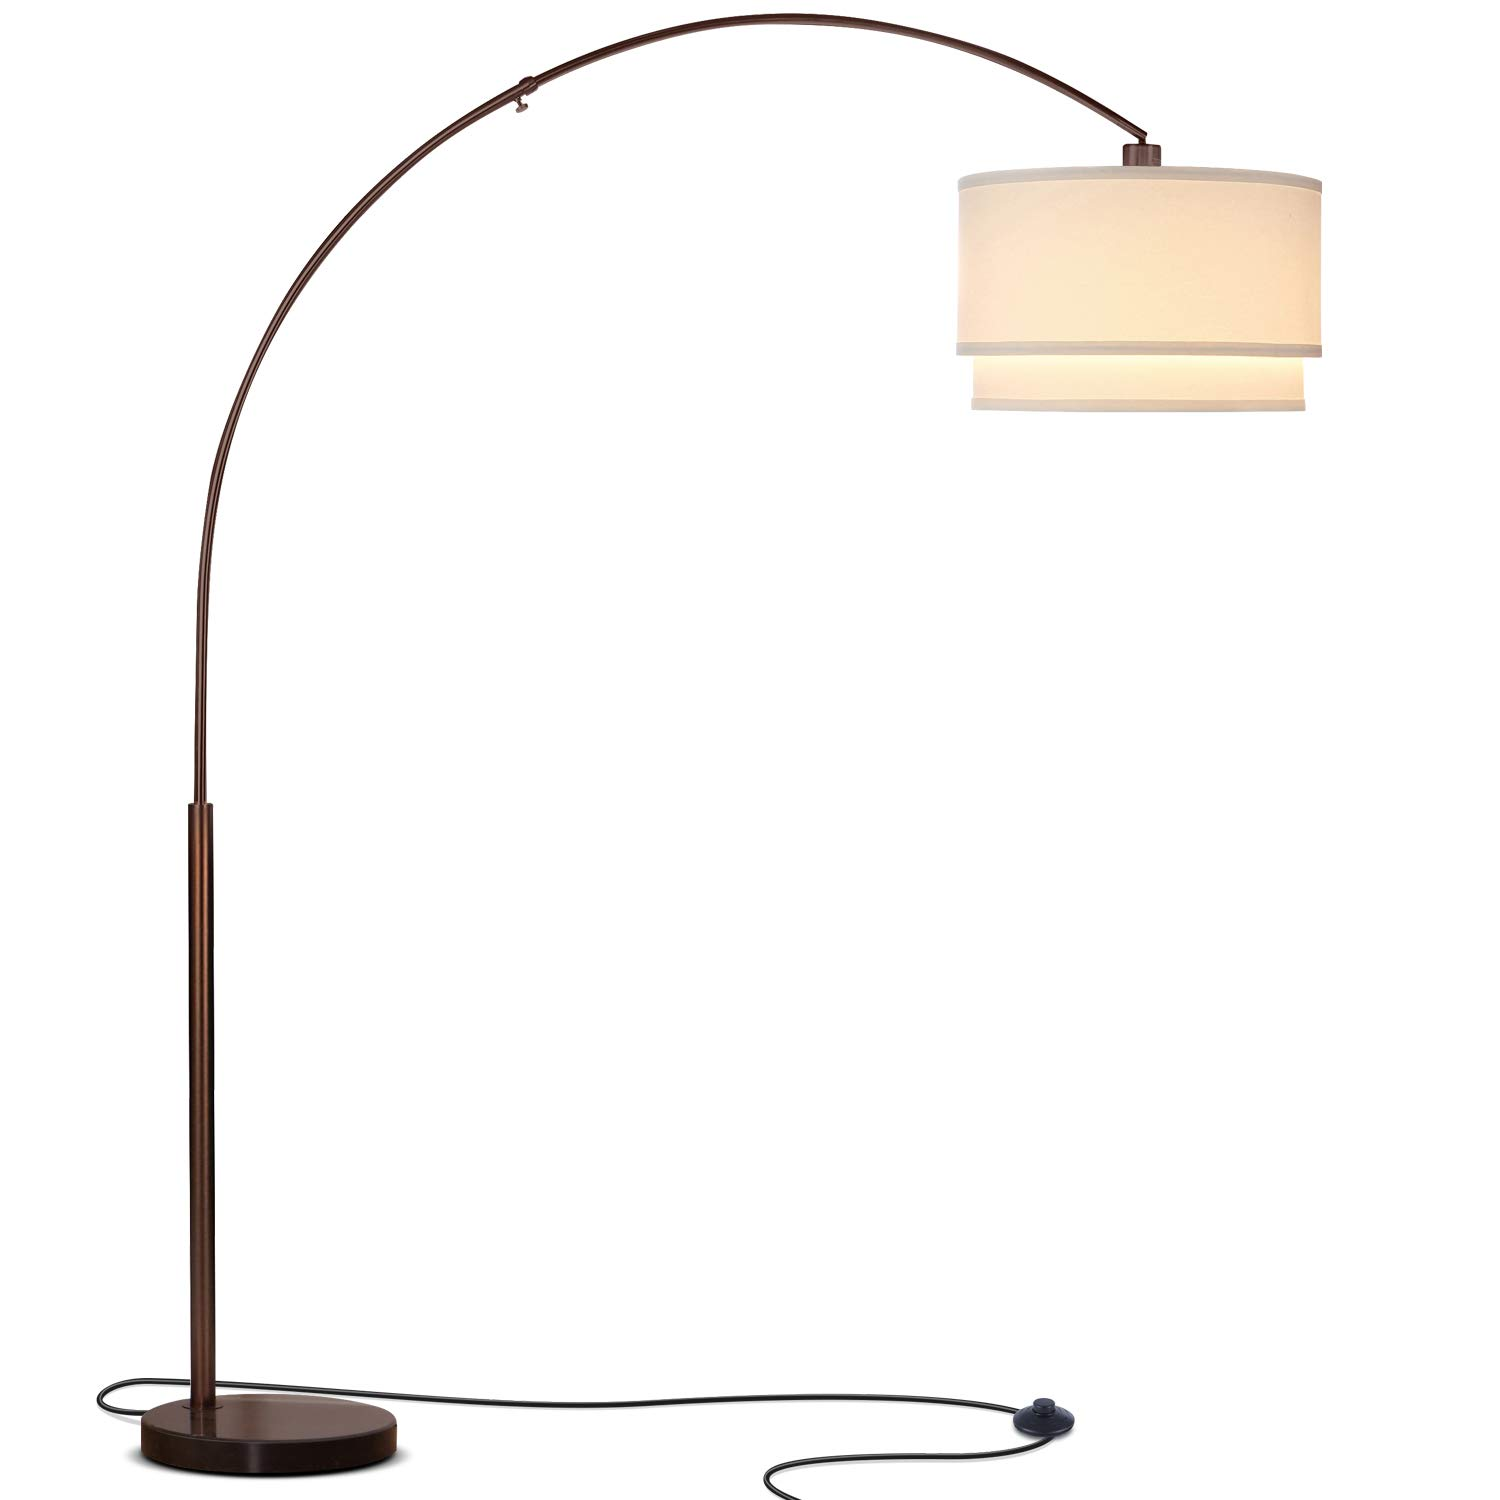 Brightech Mason LED Arc Floor Lamp with Marble Base - Living Room Pole Lighting - Modern, Tall Standing Hanging Light Fits Behind The Couch Or in A Corner - Bronze by Brightech